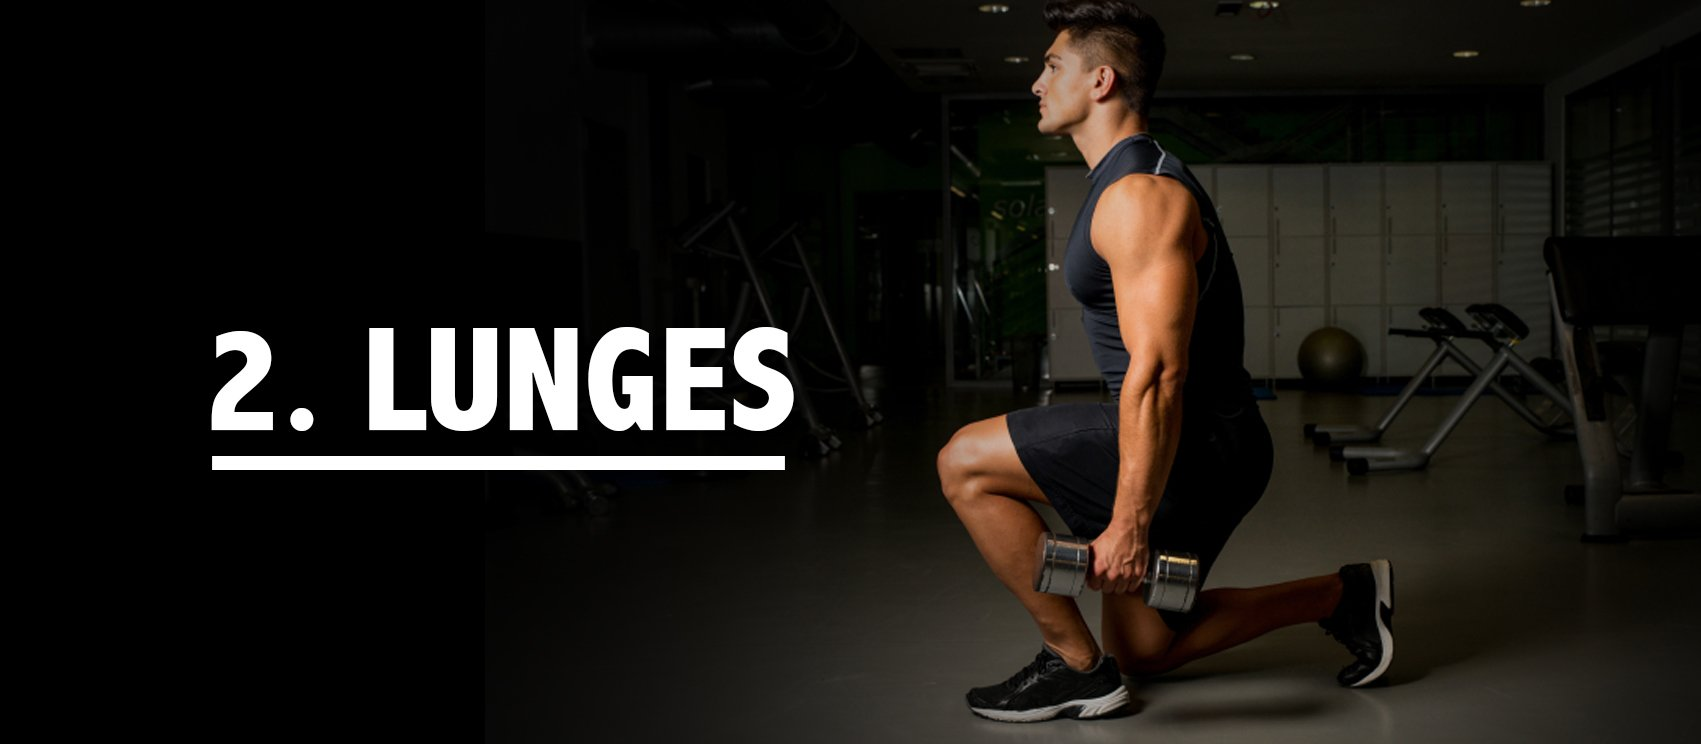 lunges-to-lose-belly-fat.jpg